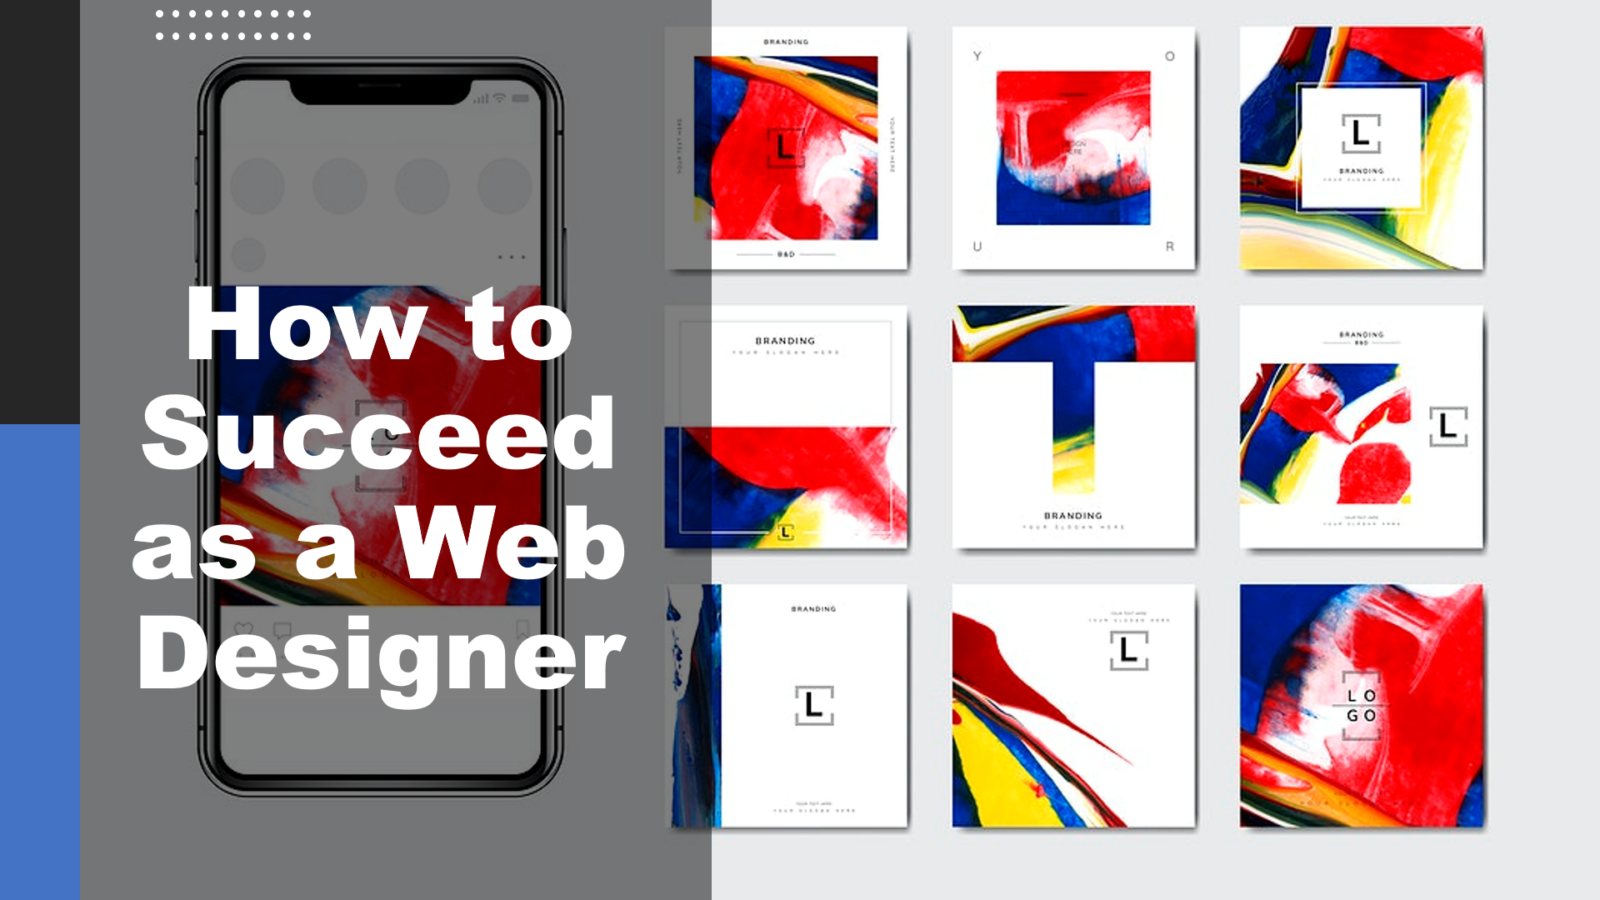 How to succeed as a web designer?